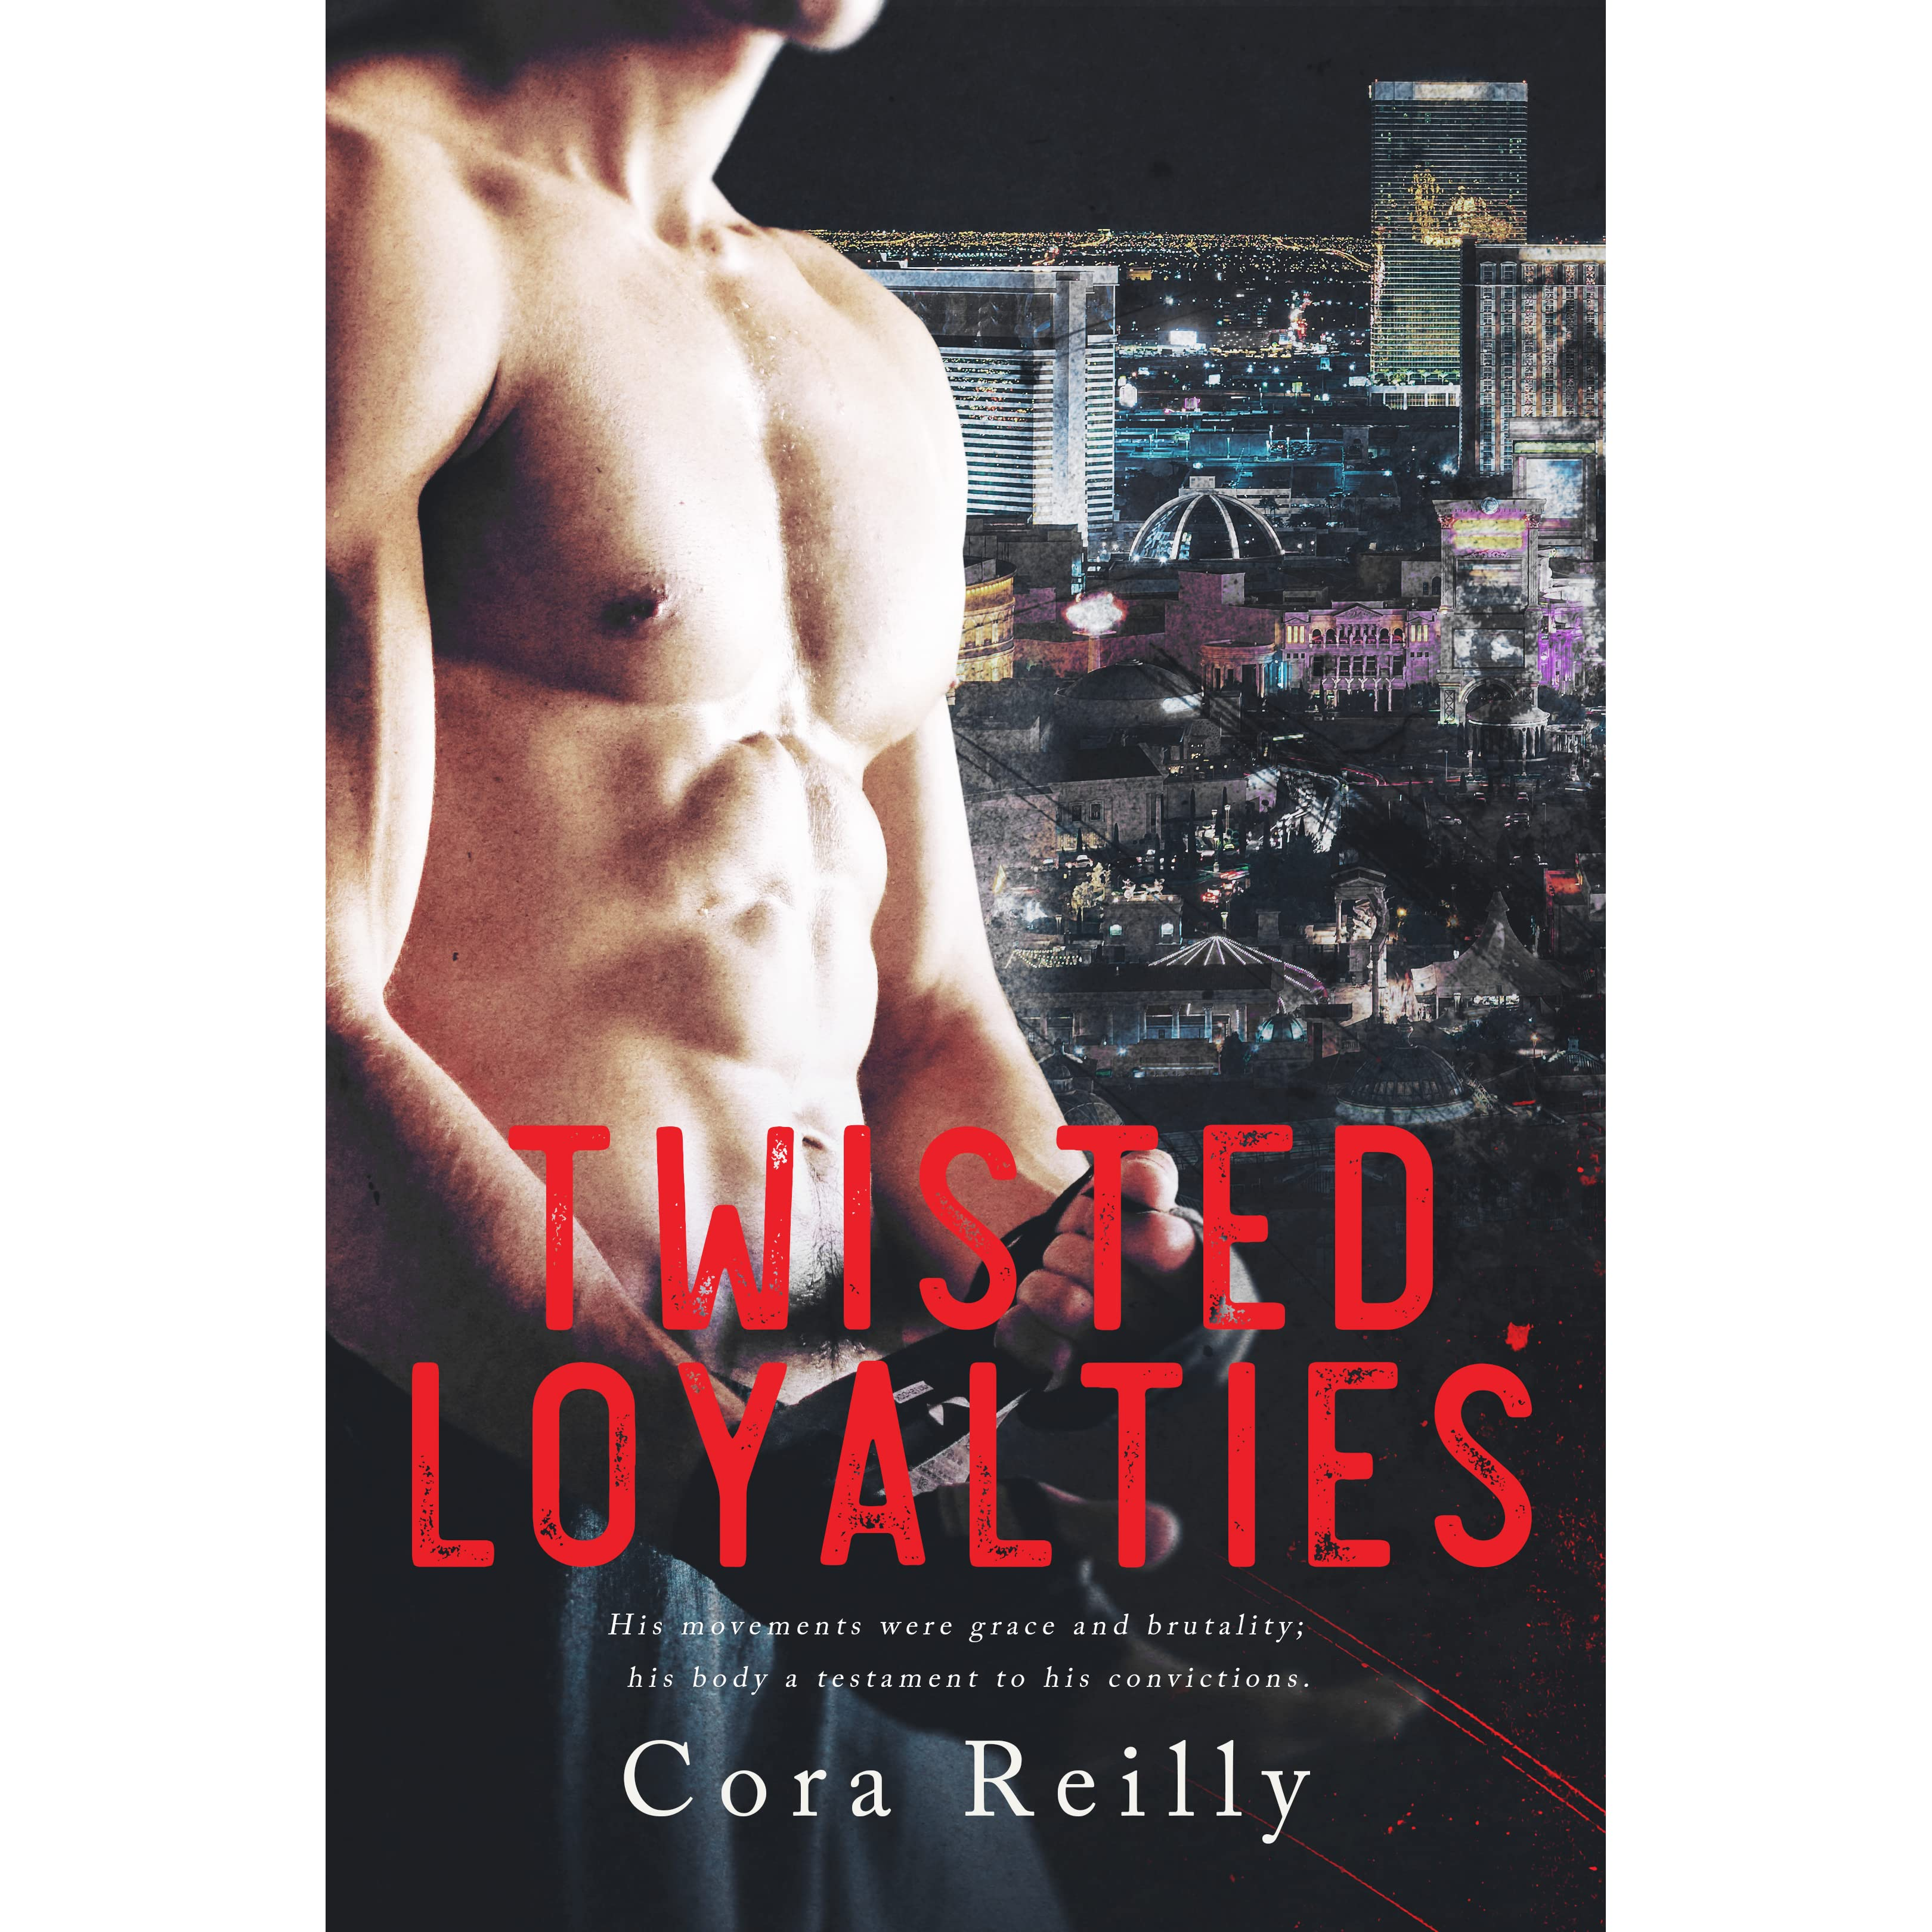 Camorra Libro Twisted Loyalties The Camorra Chronicles 1 By Cora Reilly